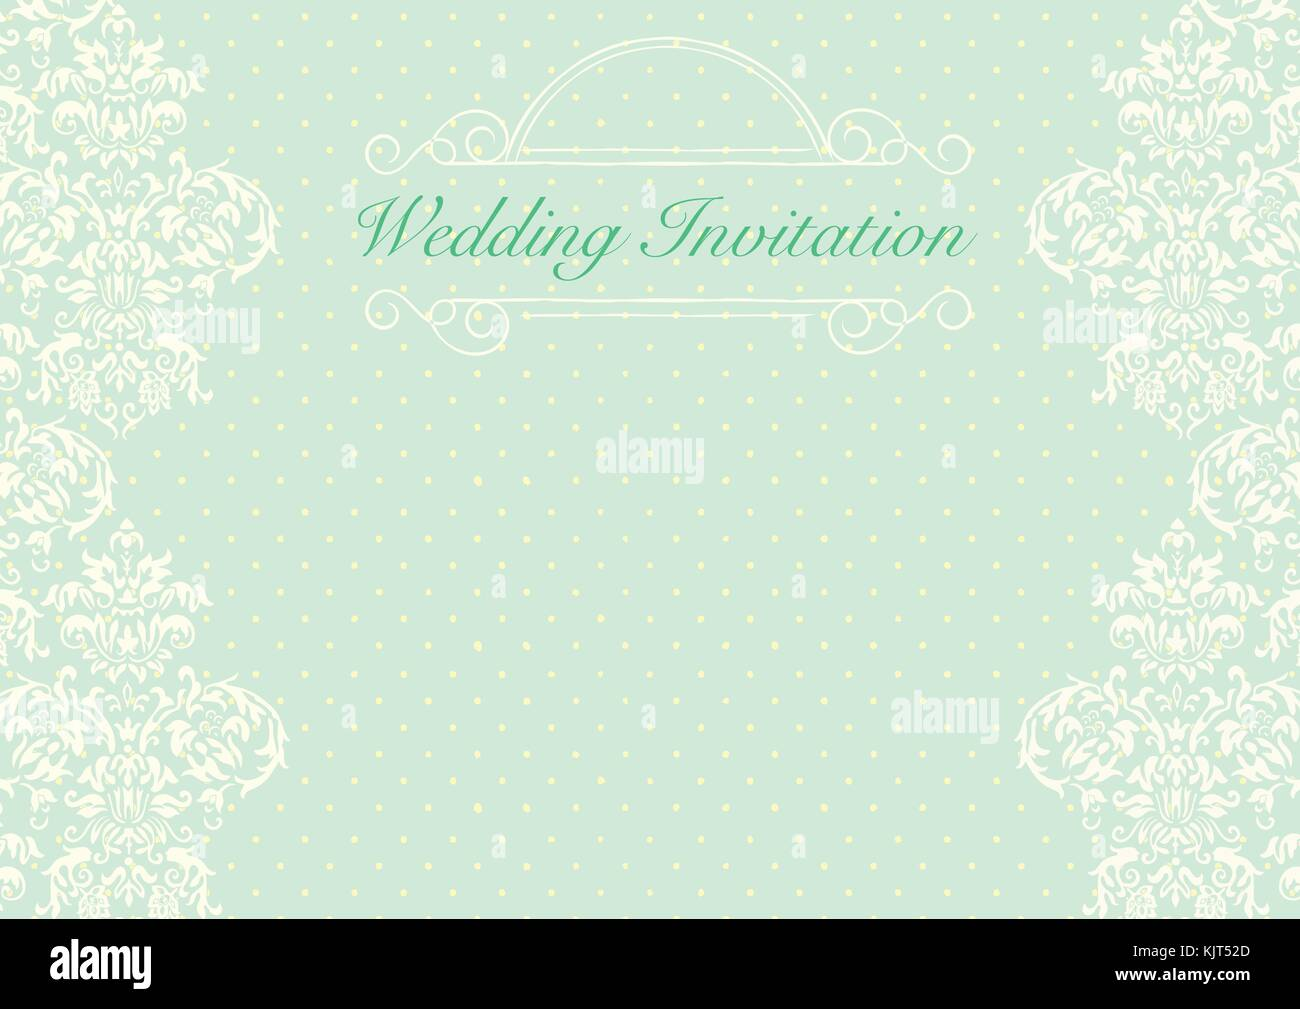 The green wedding invitation card background template with yellow ...